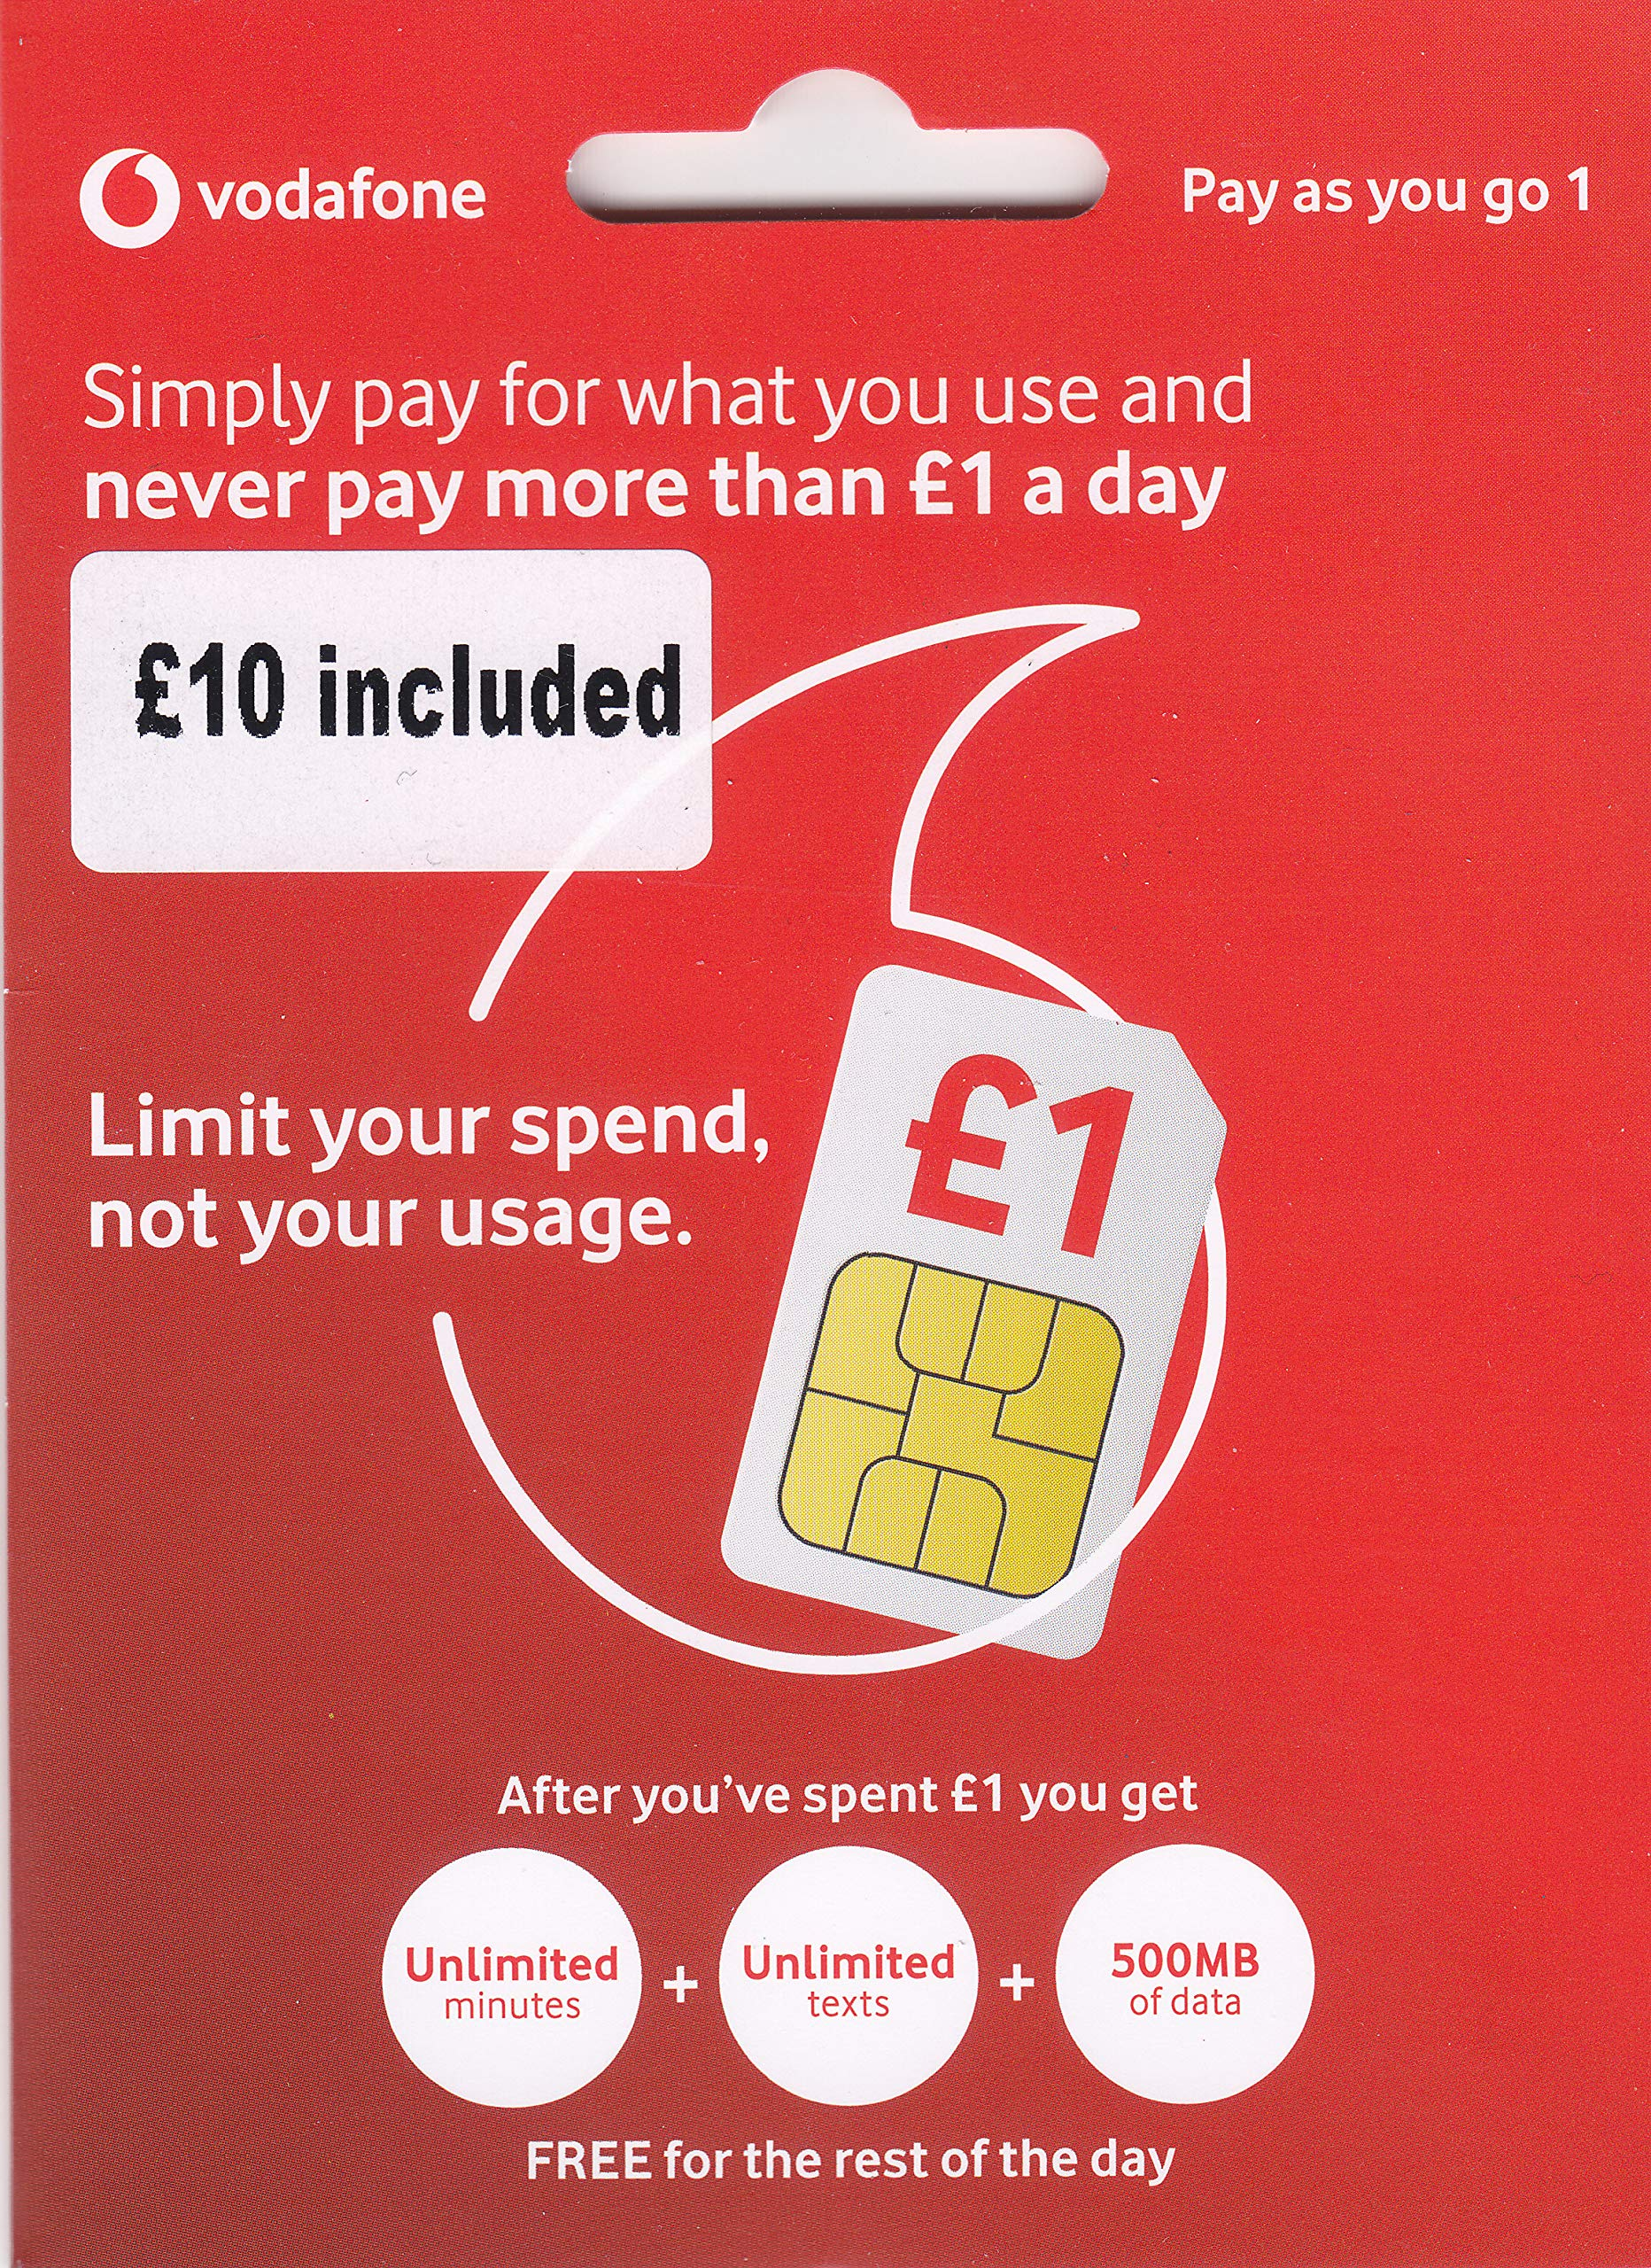 UK Vodafone SIM Card with £10 Credit preloaded, 4G Data, Voice mins and Texts to use in Europe and The UK by Vodafone